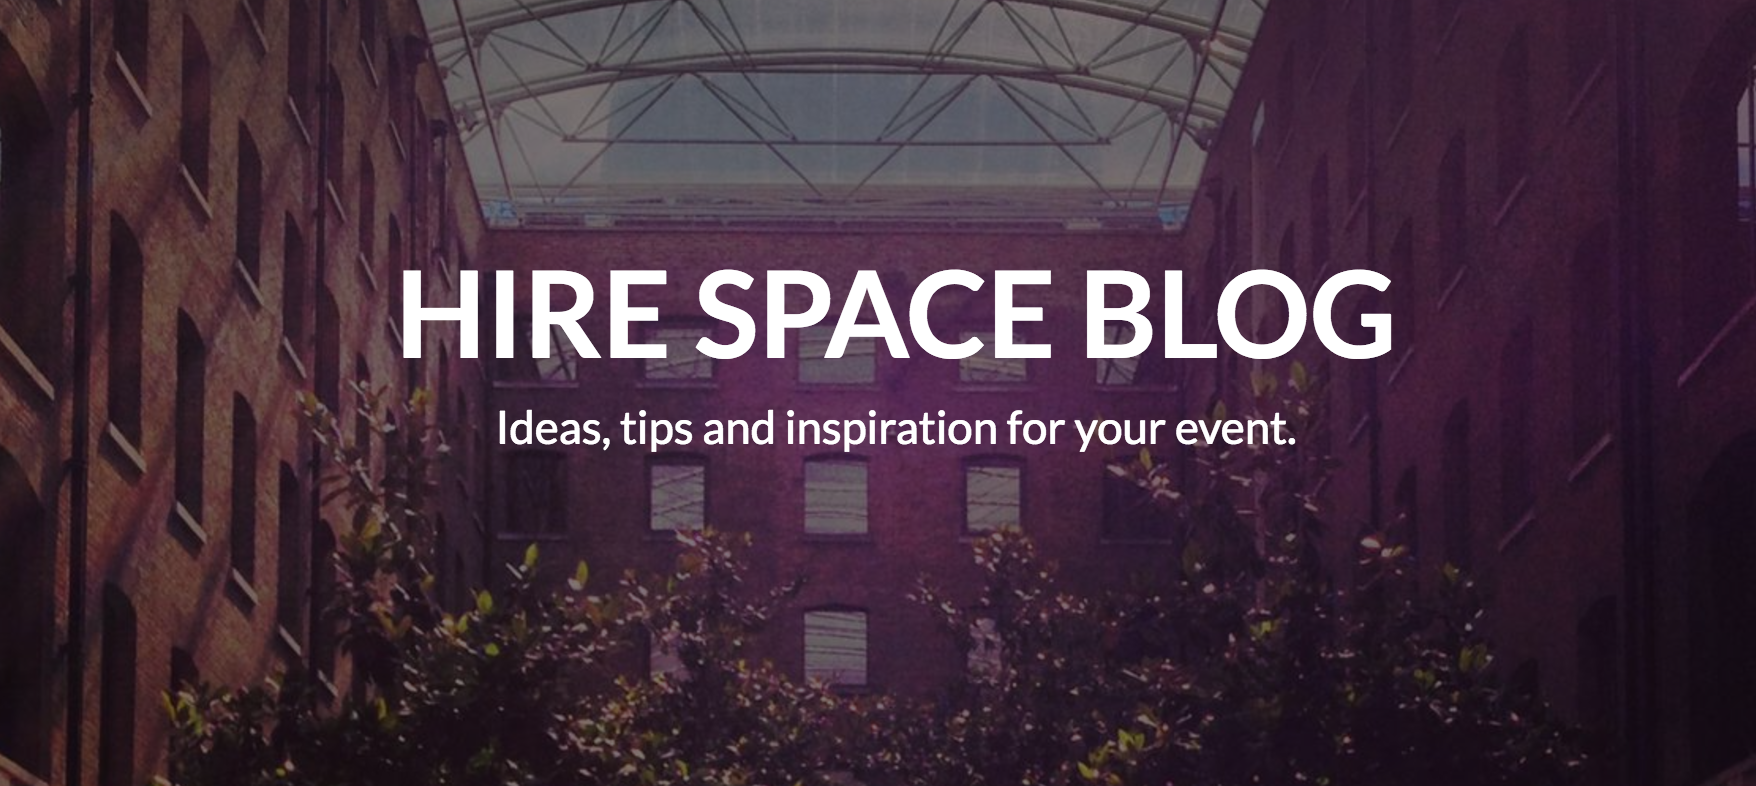 Hire Space blog